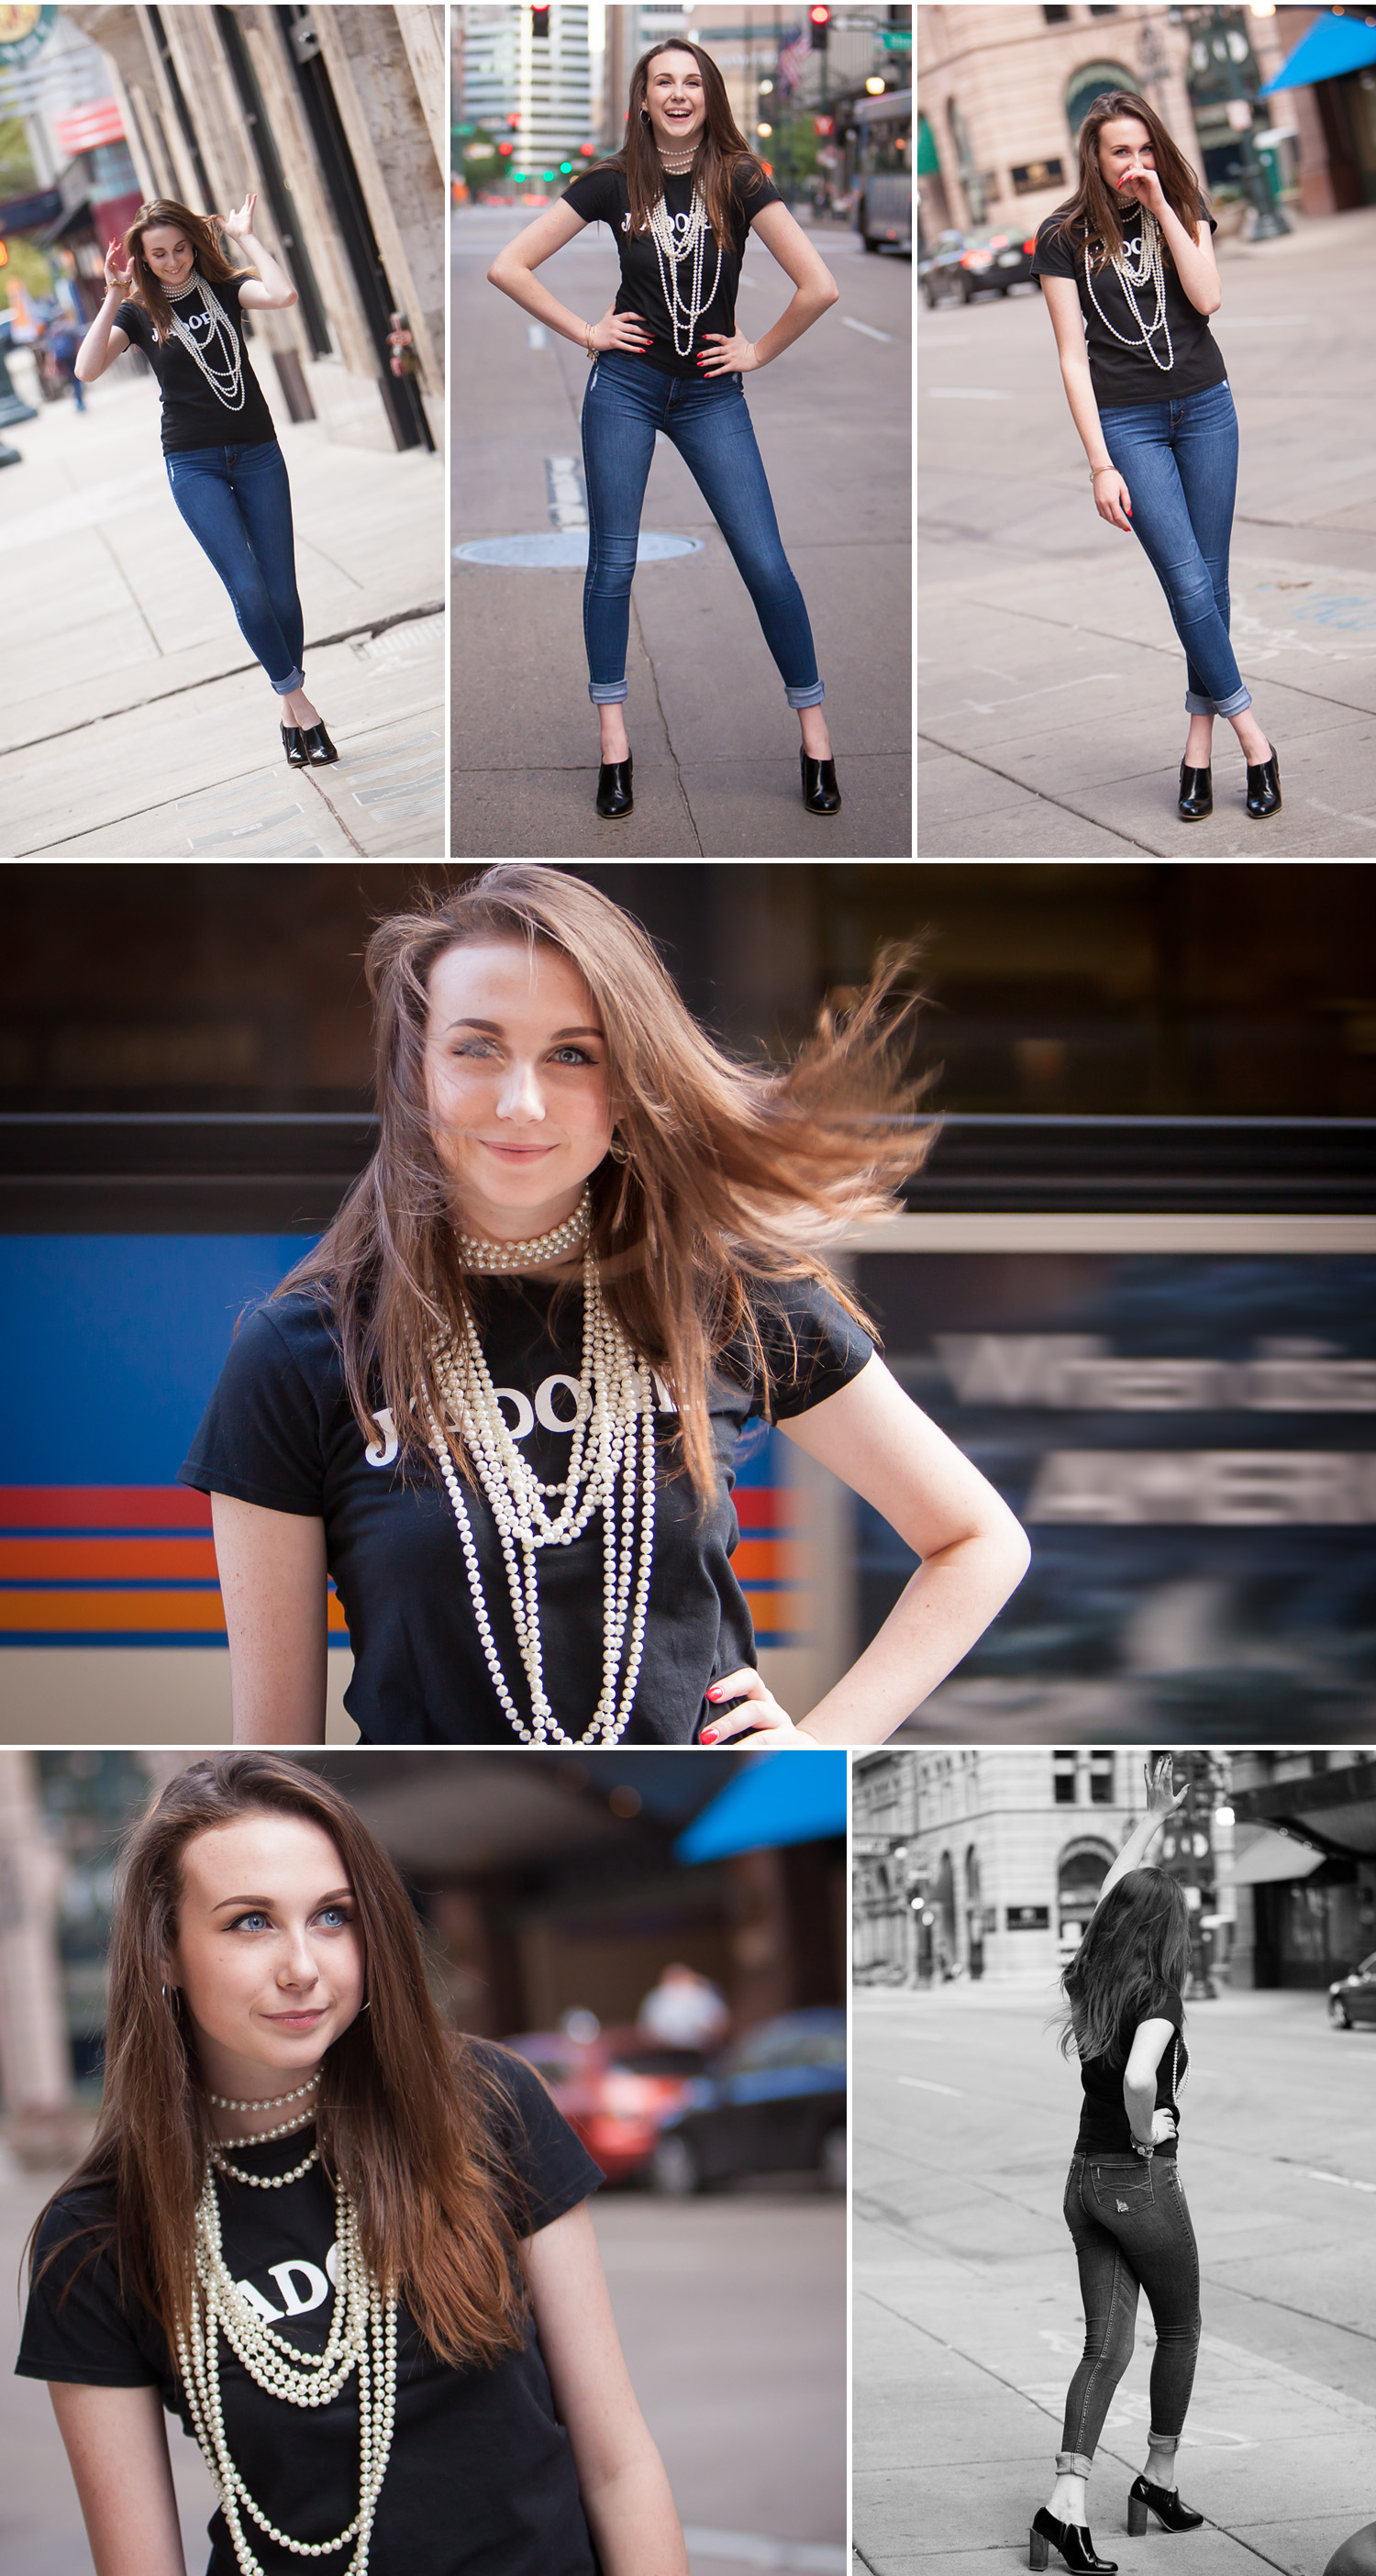 Vibrant, motion filled urban High School Senior pictures in the streets of downtown Denver with photographer Jennifer Koskinen of Merritt Portrait Studio